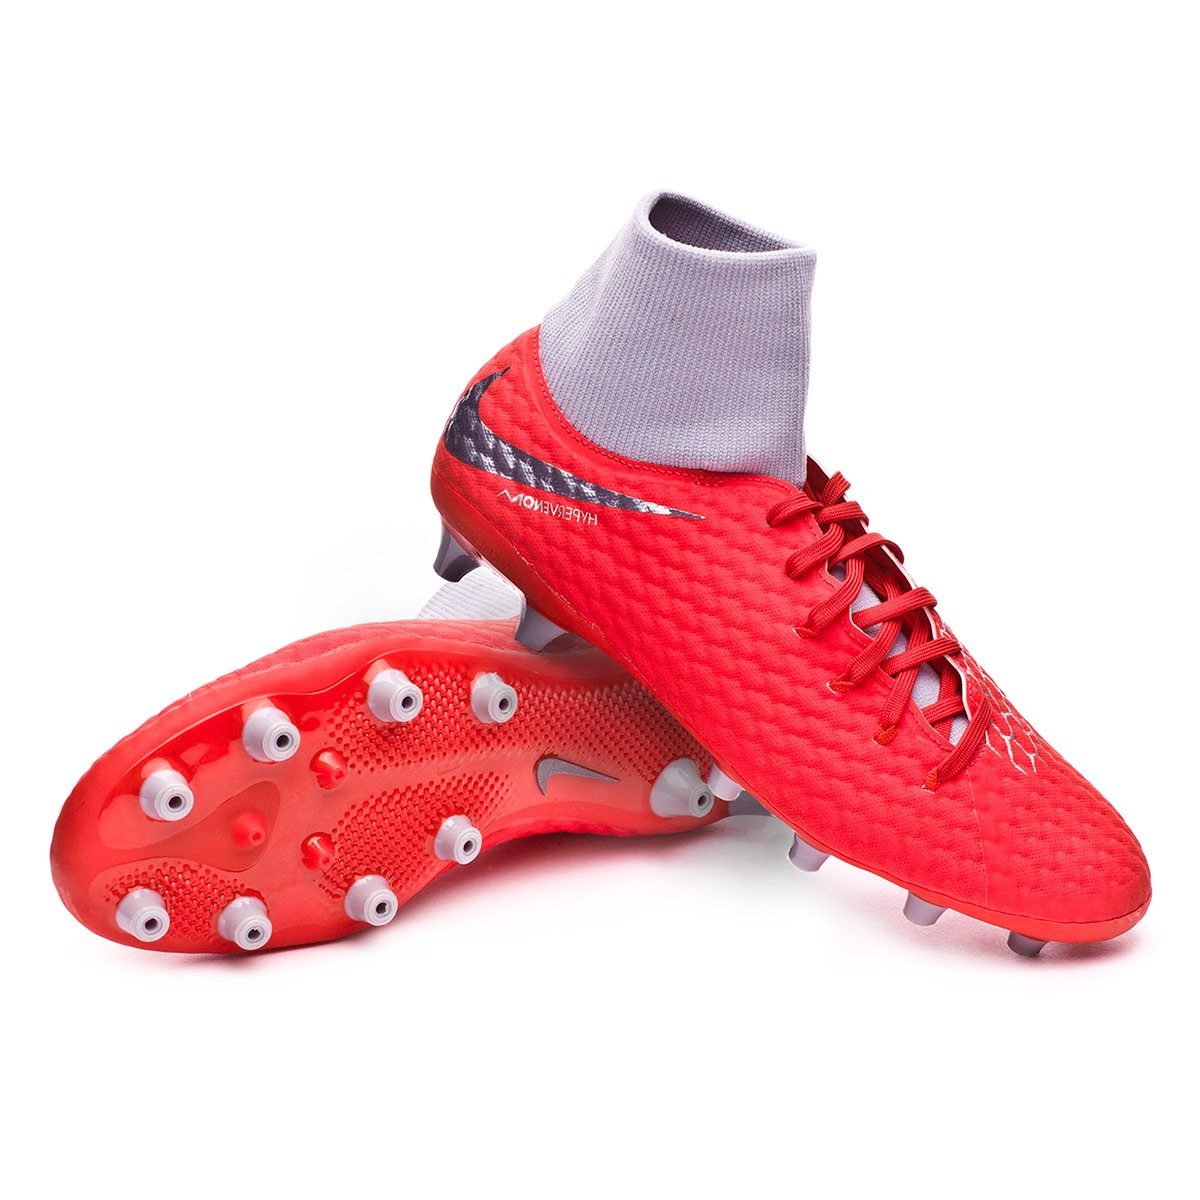 dad14001ba2 Nike Hypervenom Phantom III Academy DF AG-Pro Football Boots. Light crimson-Metallic  dark ...